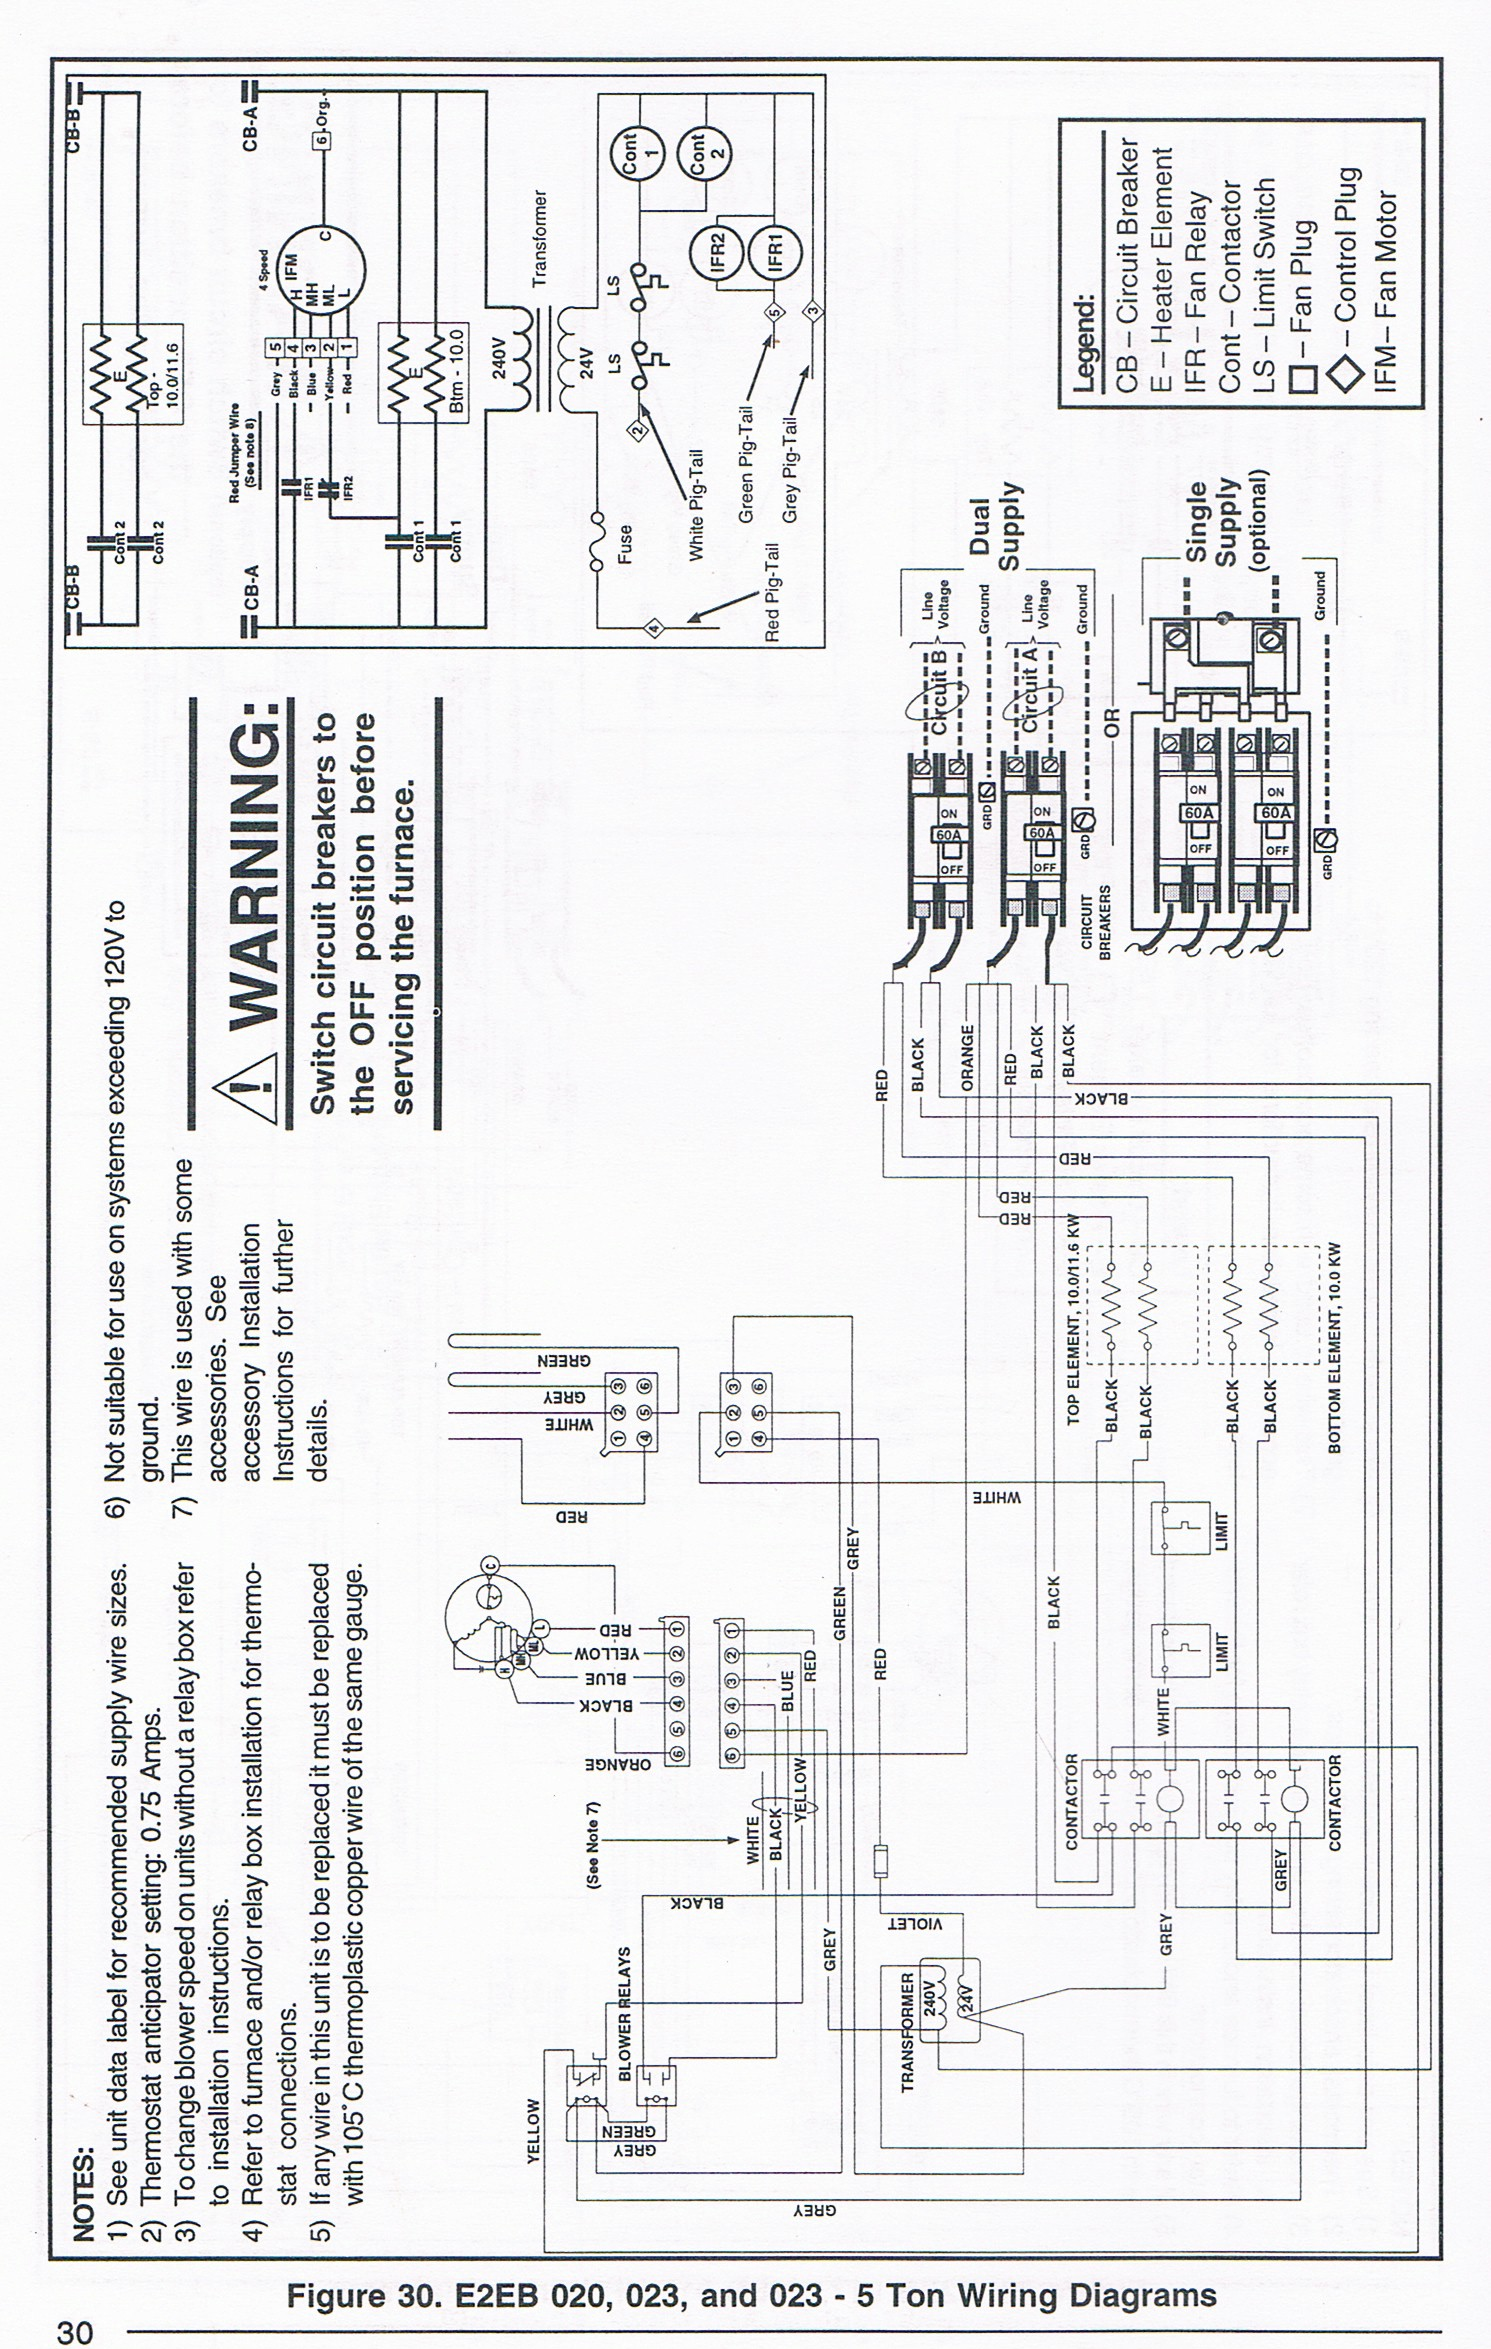 Wiring Diagram Nordyne